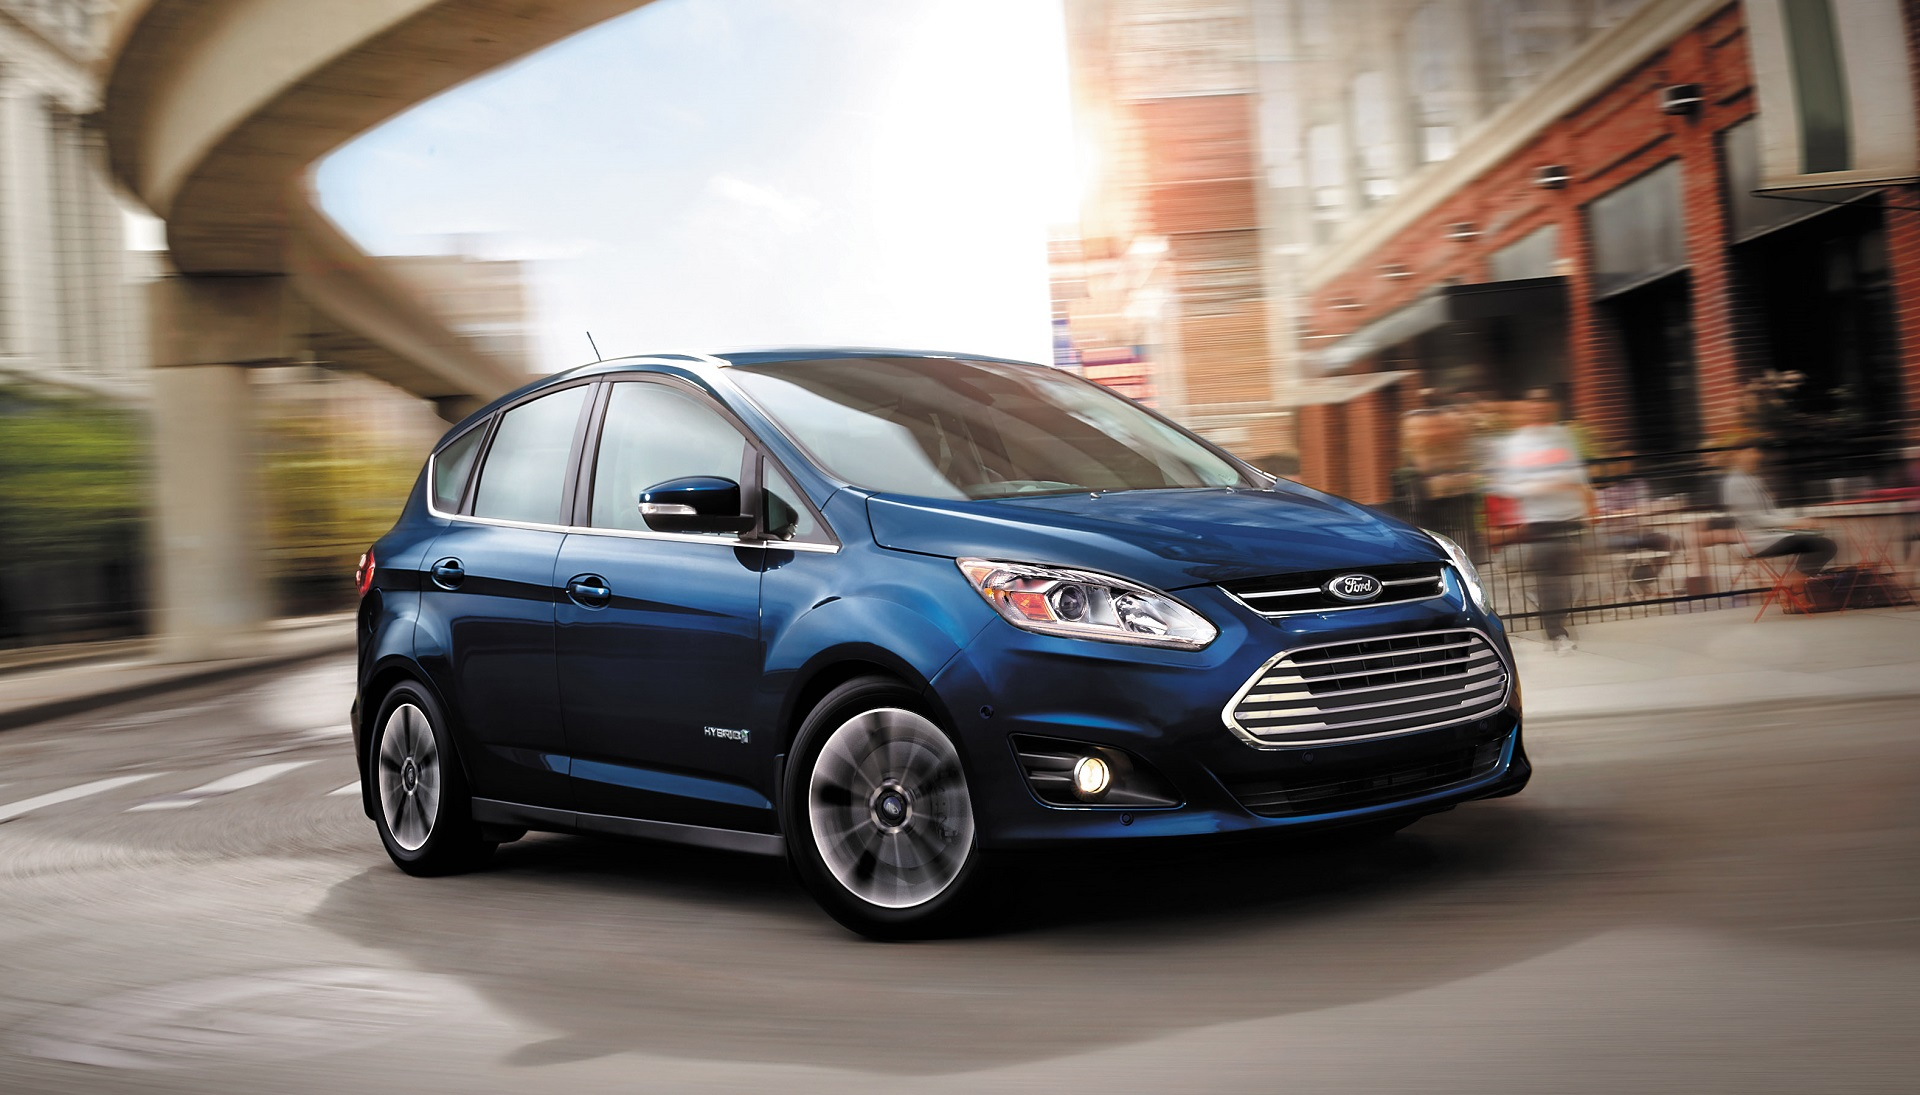 Ford Grand C Max >> 2017 Ford C-Max vs. 2017 Toyota Prius: Compare Cars